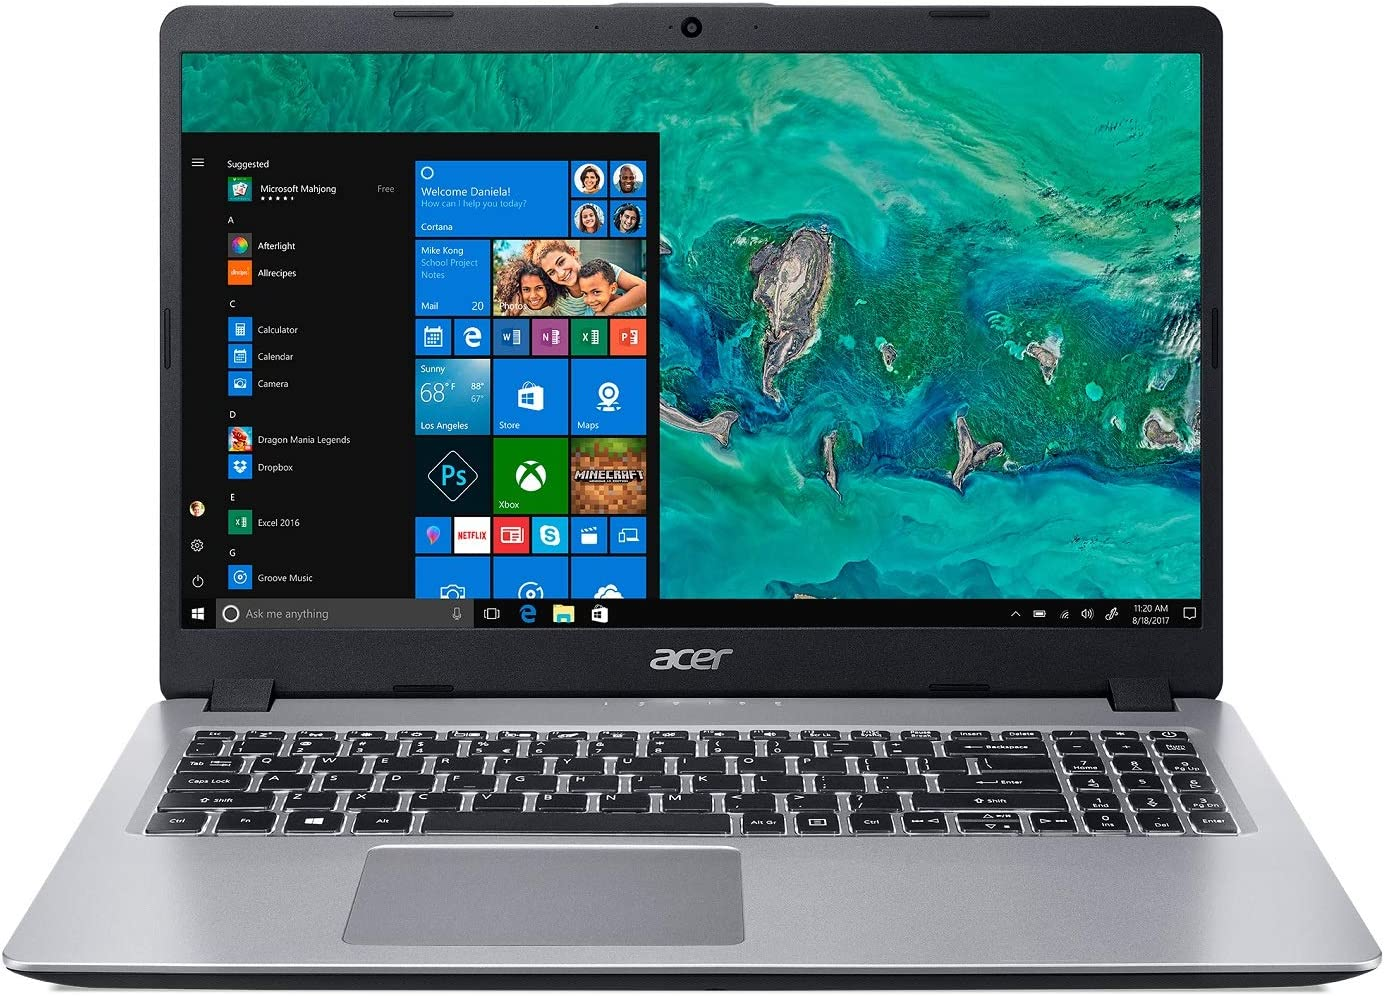 "Acer Aspire 5, 15.6"" Full HD, 8th Gen Intel Core i5-8265U, 8GB DDR4, 256GB SSD, Backlit Keyboard, Windows 10 Home, A515-52-526C"